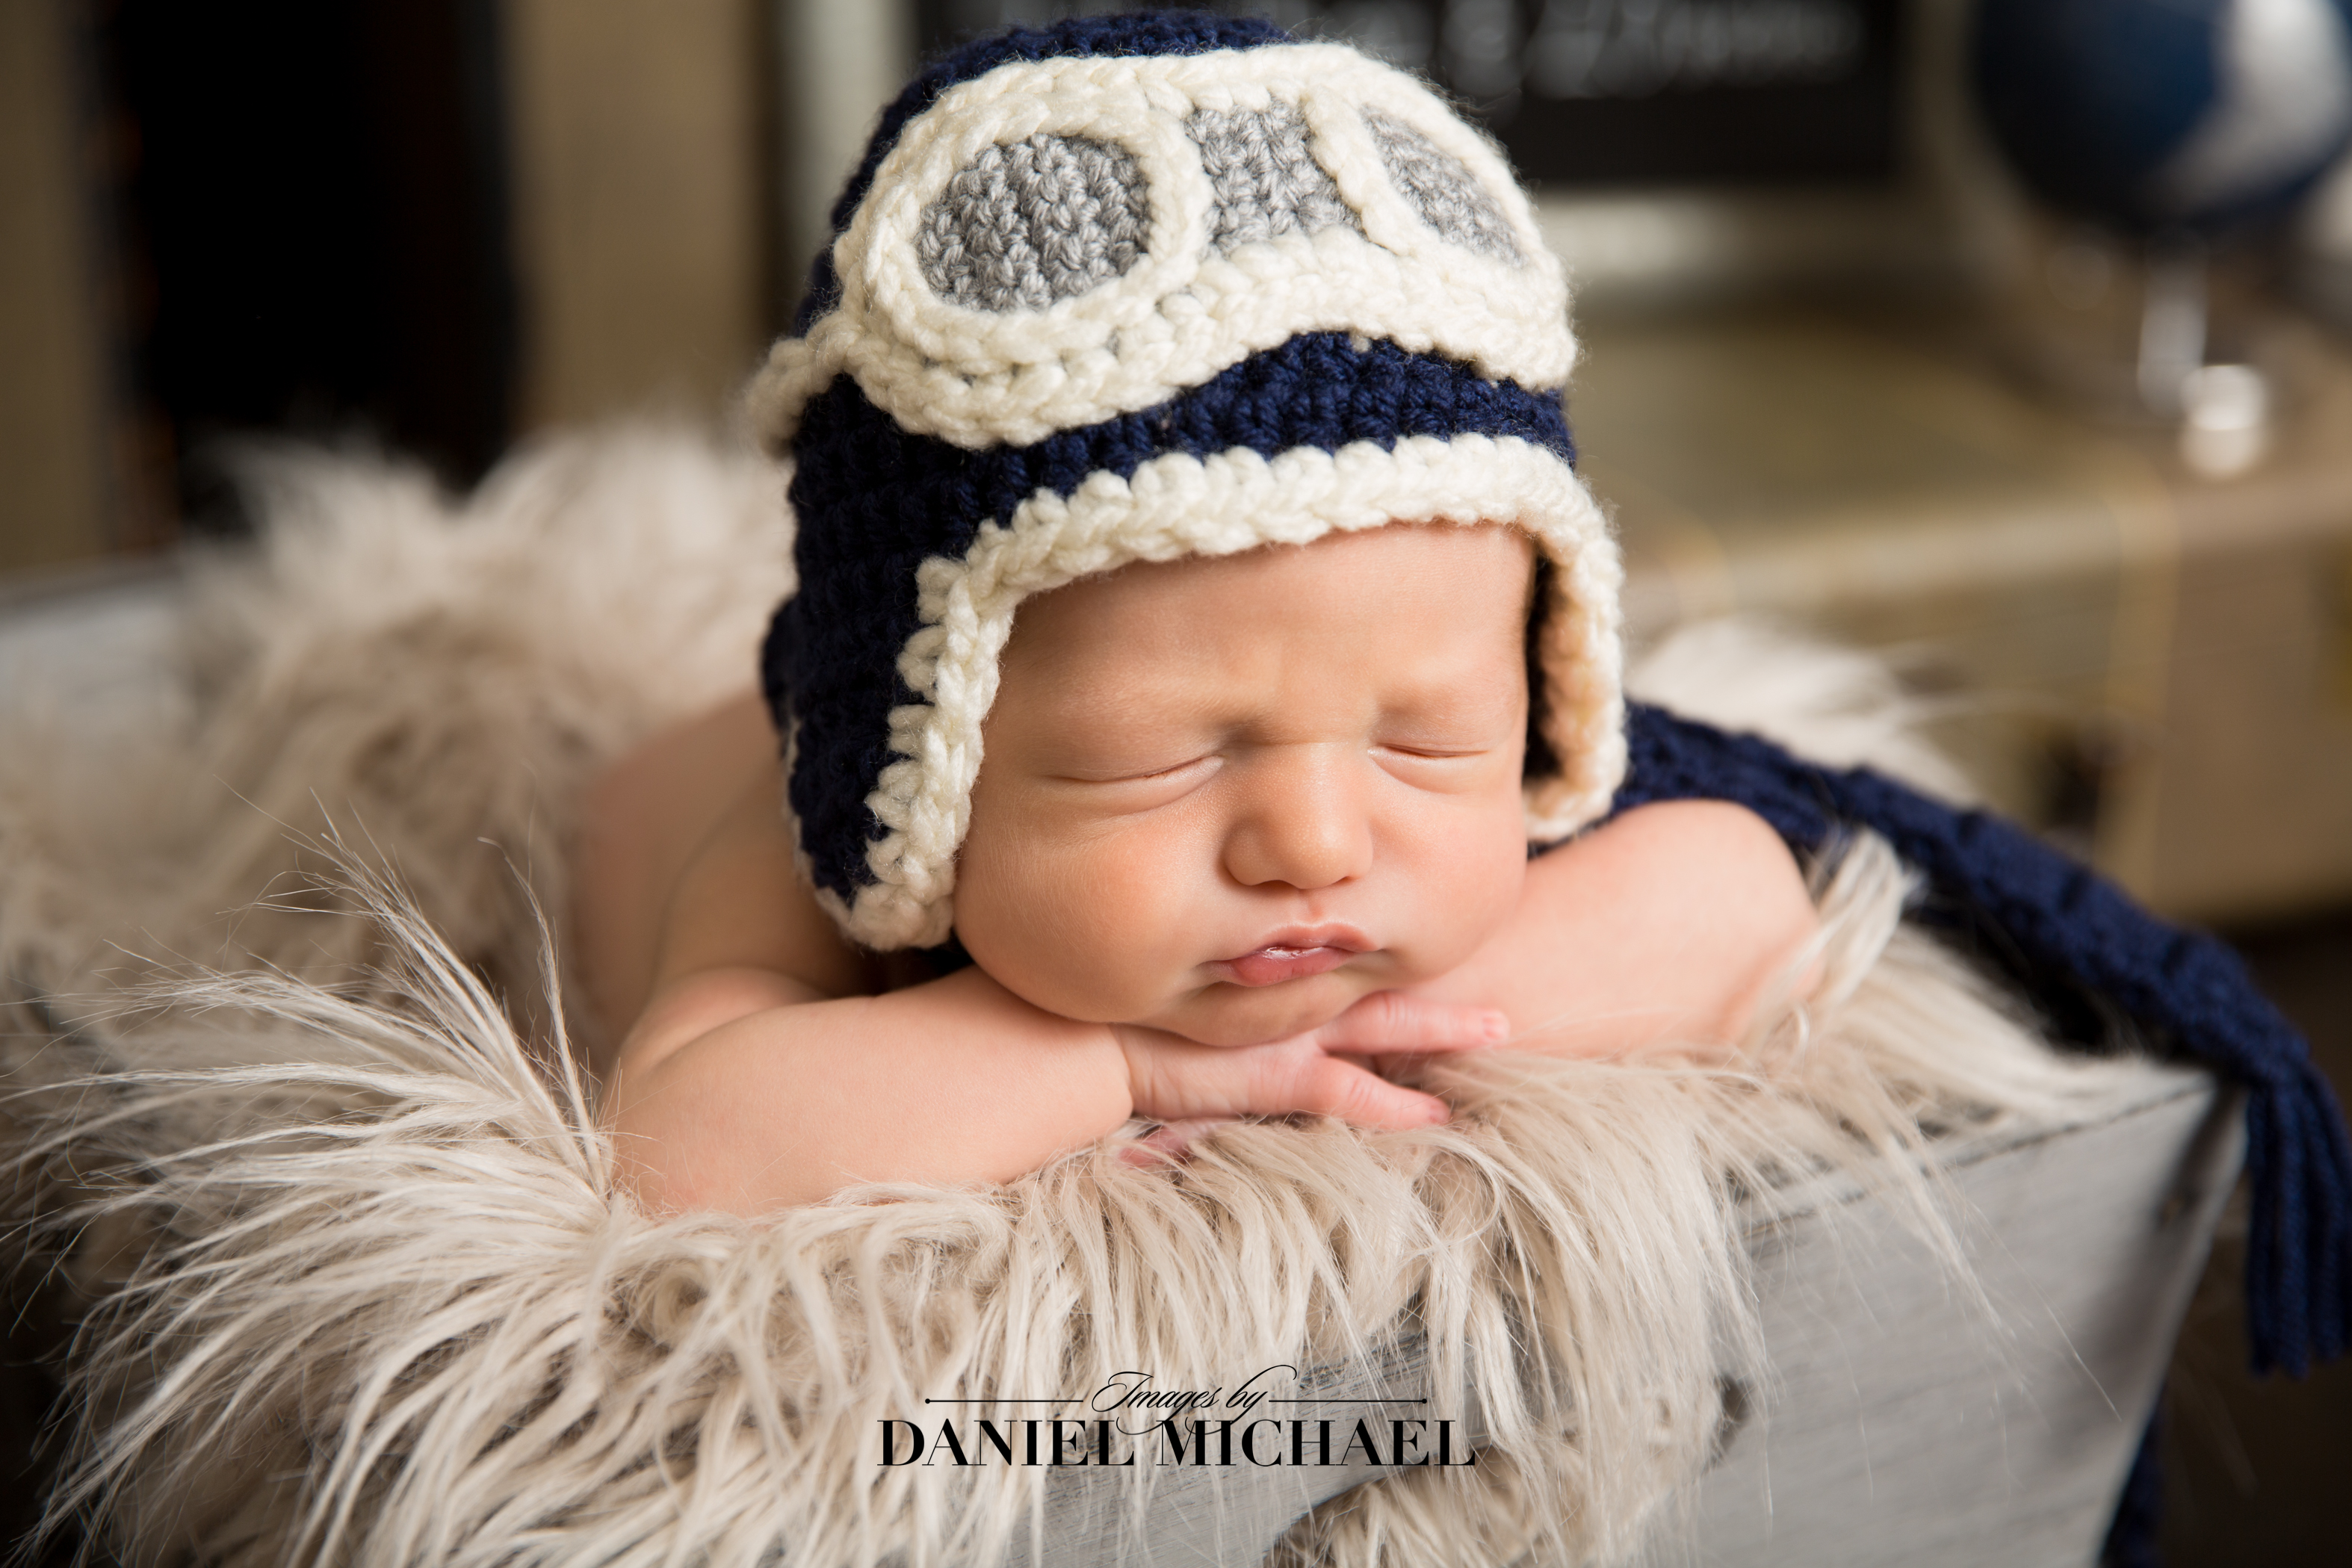 Aviator Newborn Photos, Aviator Newborn Theme, Cincinnati Aviator, Cincinnati Newborn Photography, Jessica Rist